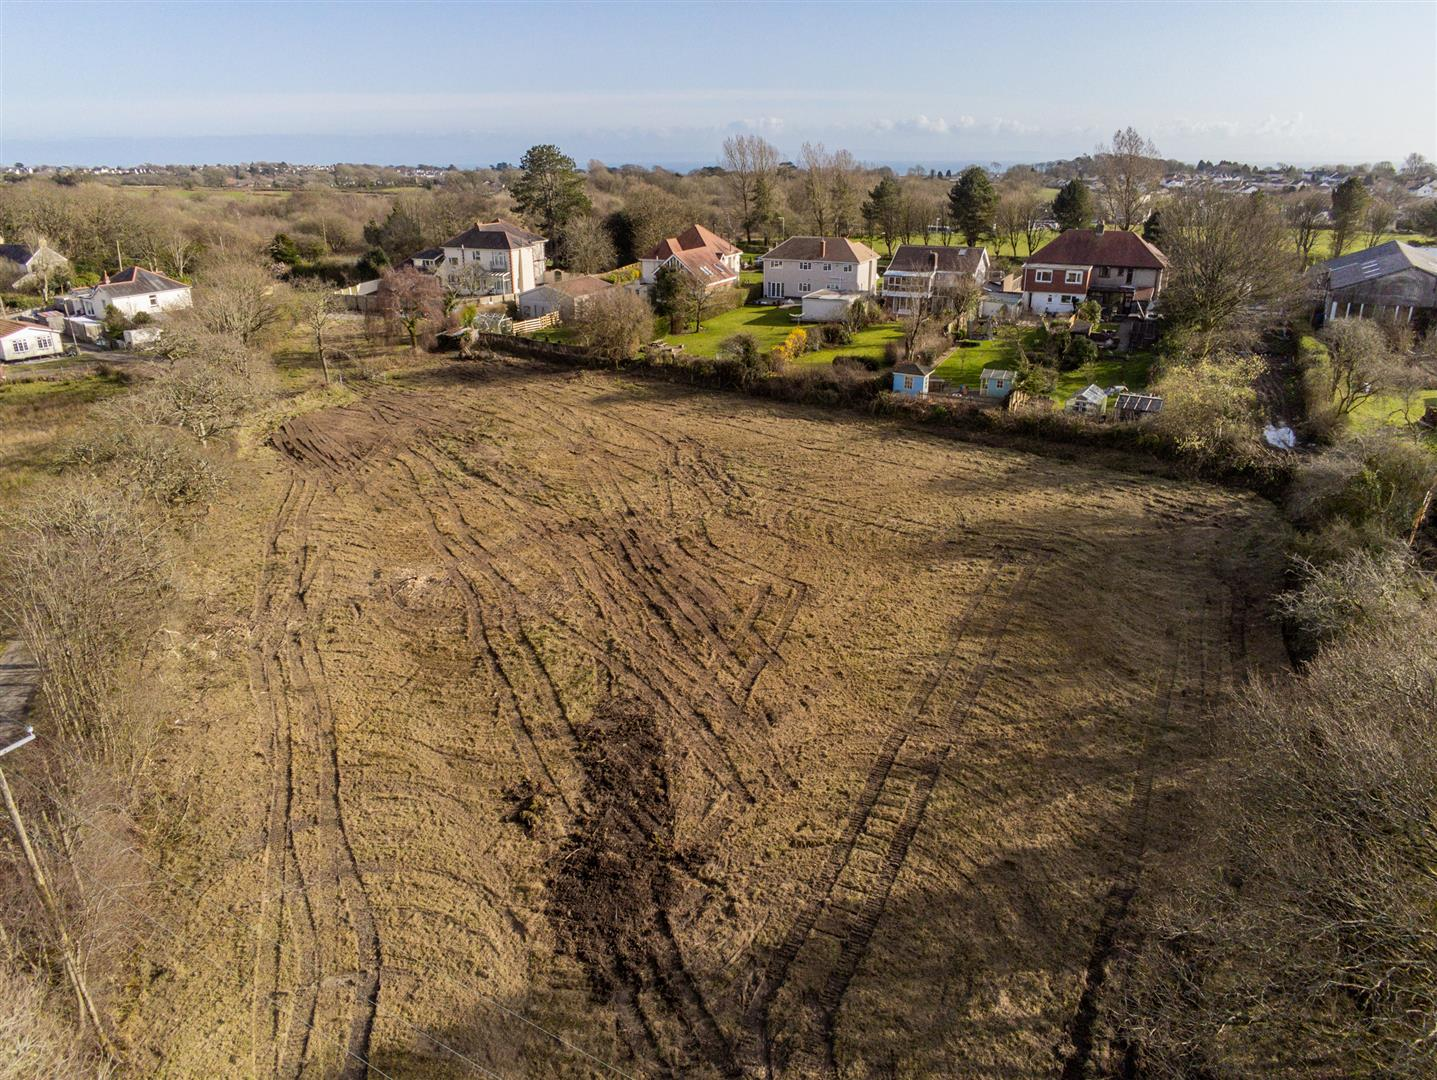 2a Northway, Plot with Planning, Bishopston, SA3 3JN